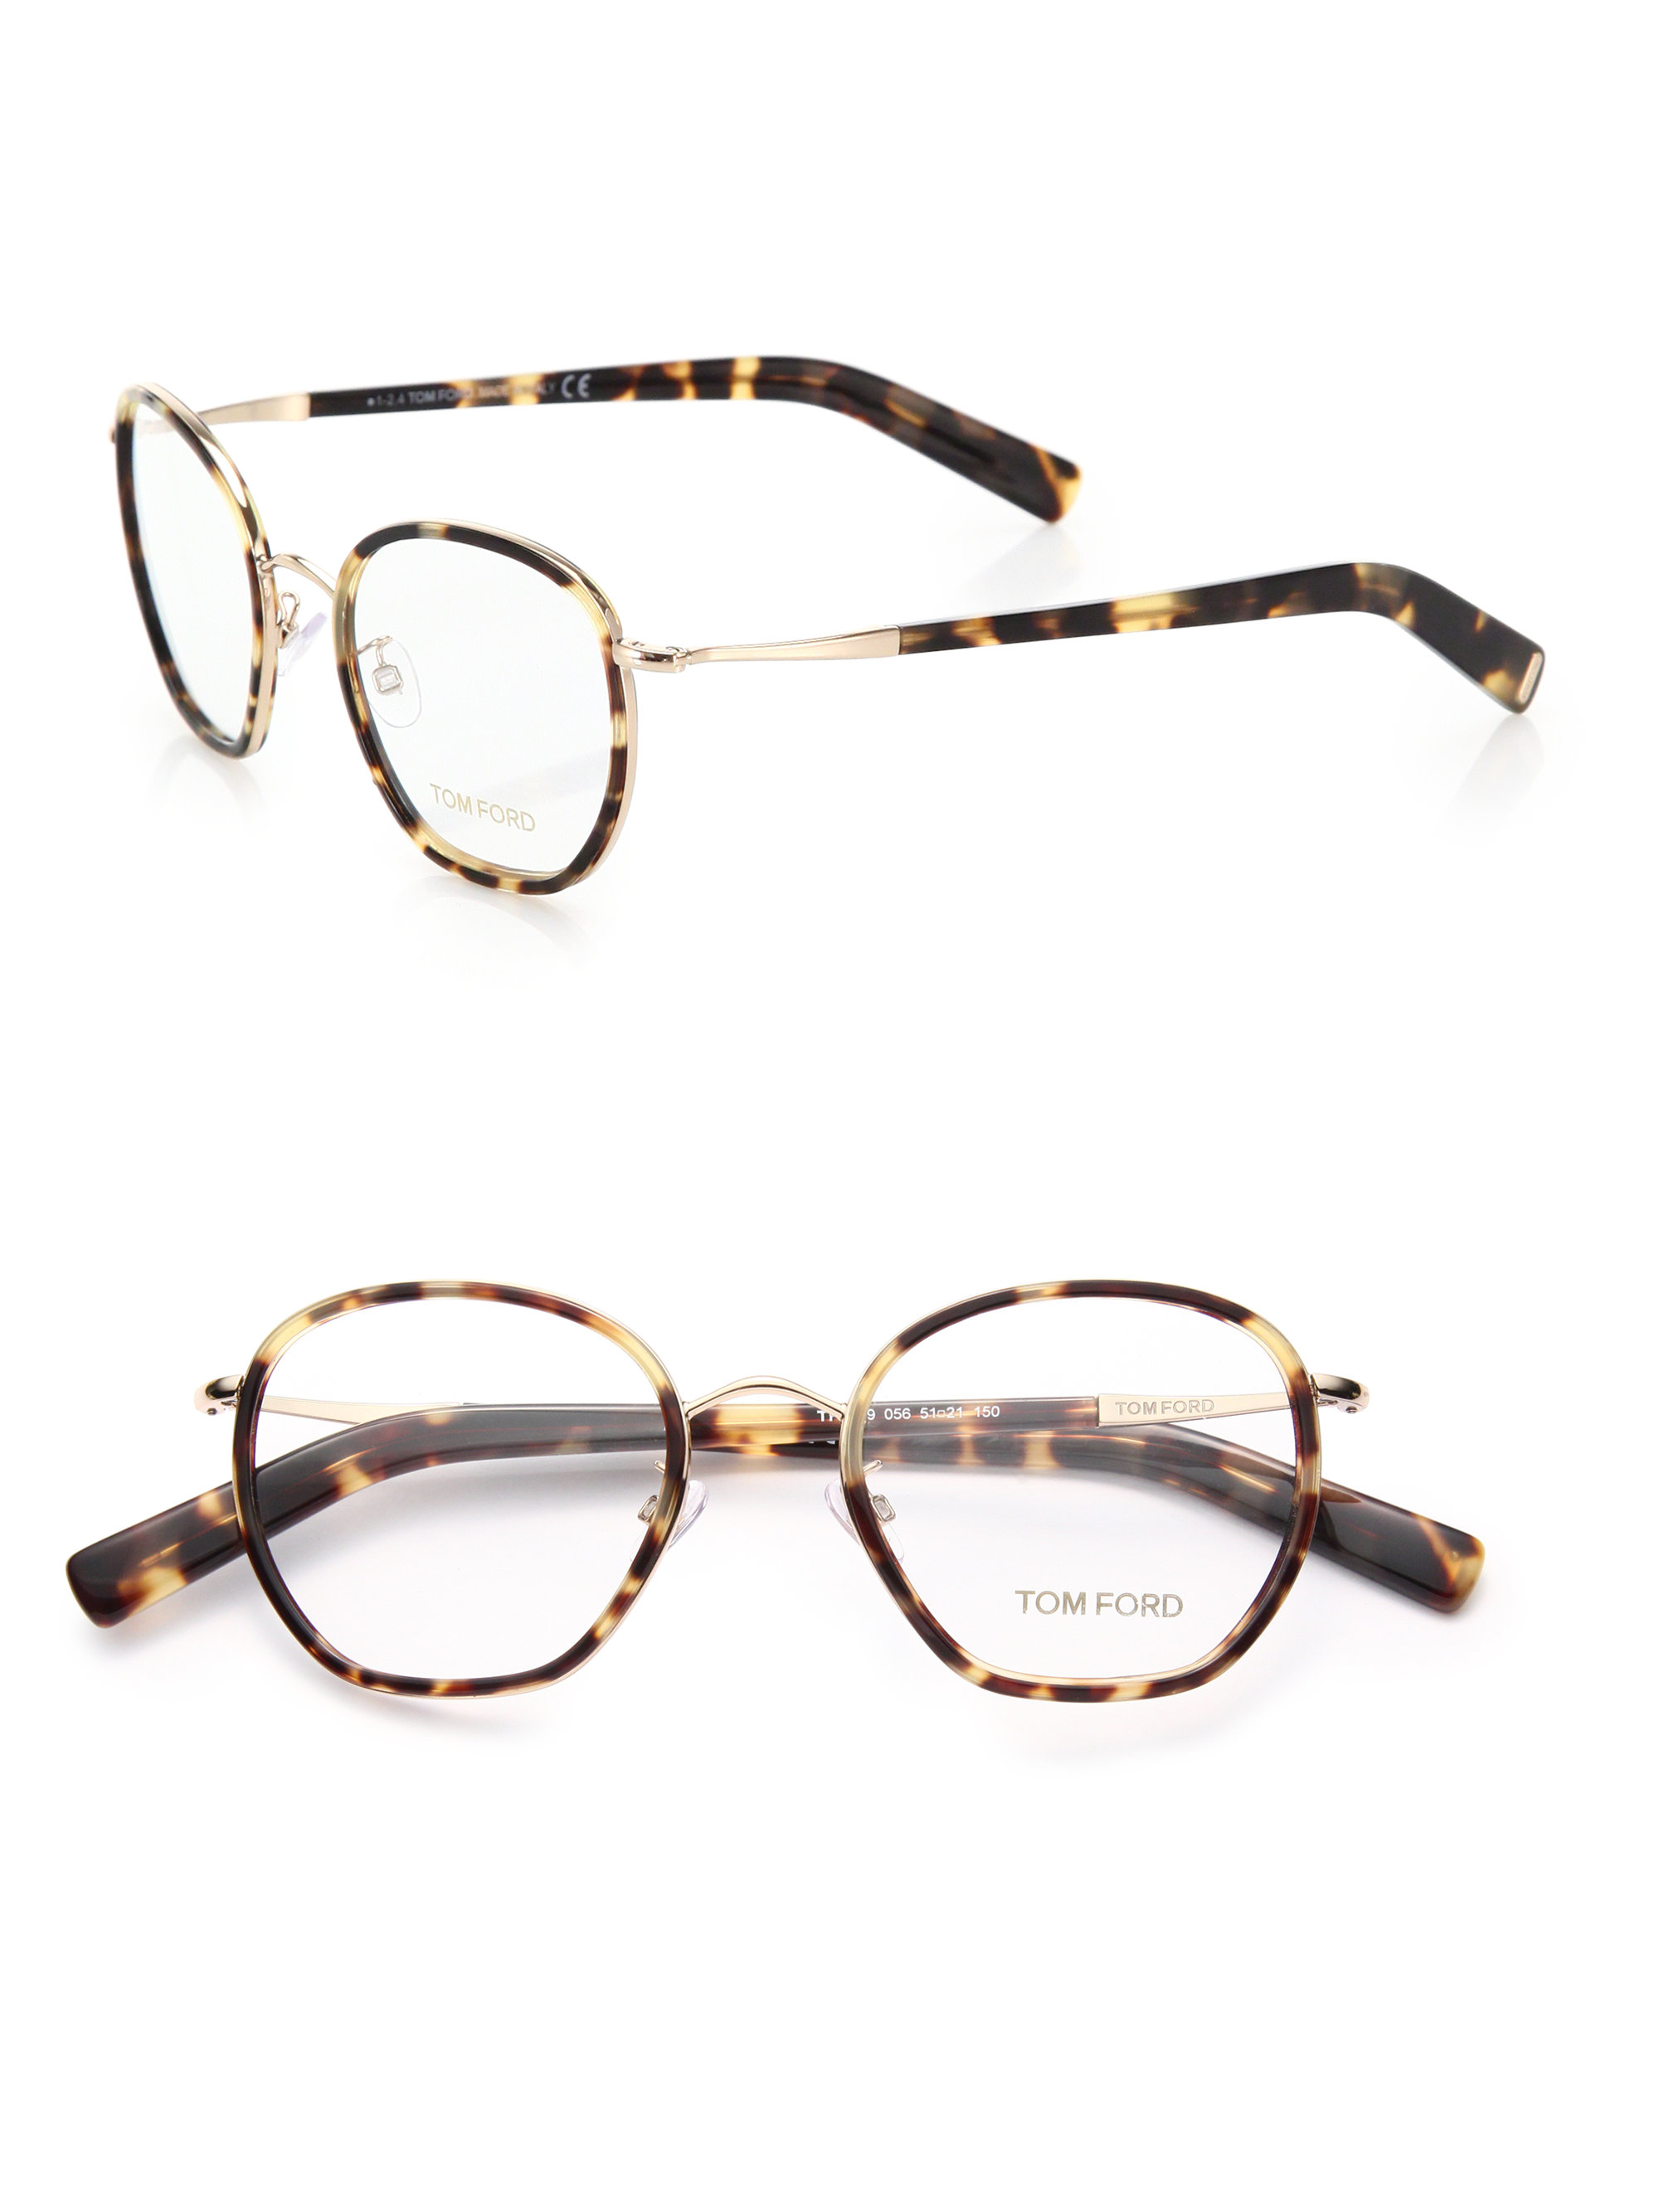 49a1196b4e Tom Ford 51mm Round Acetate   Metal Optical Glasses in Brown - Lyst